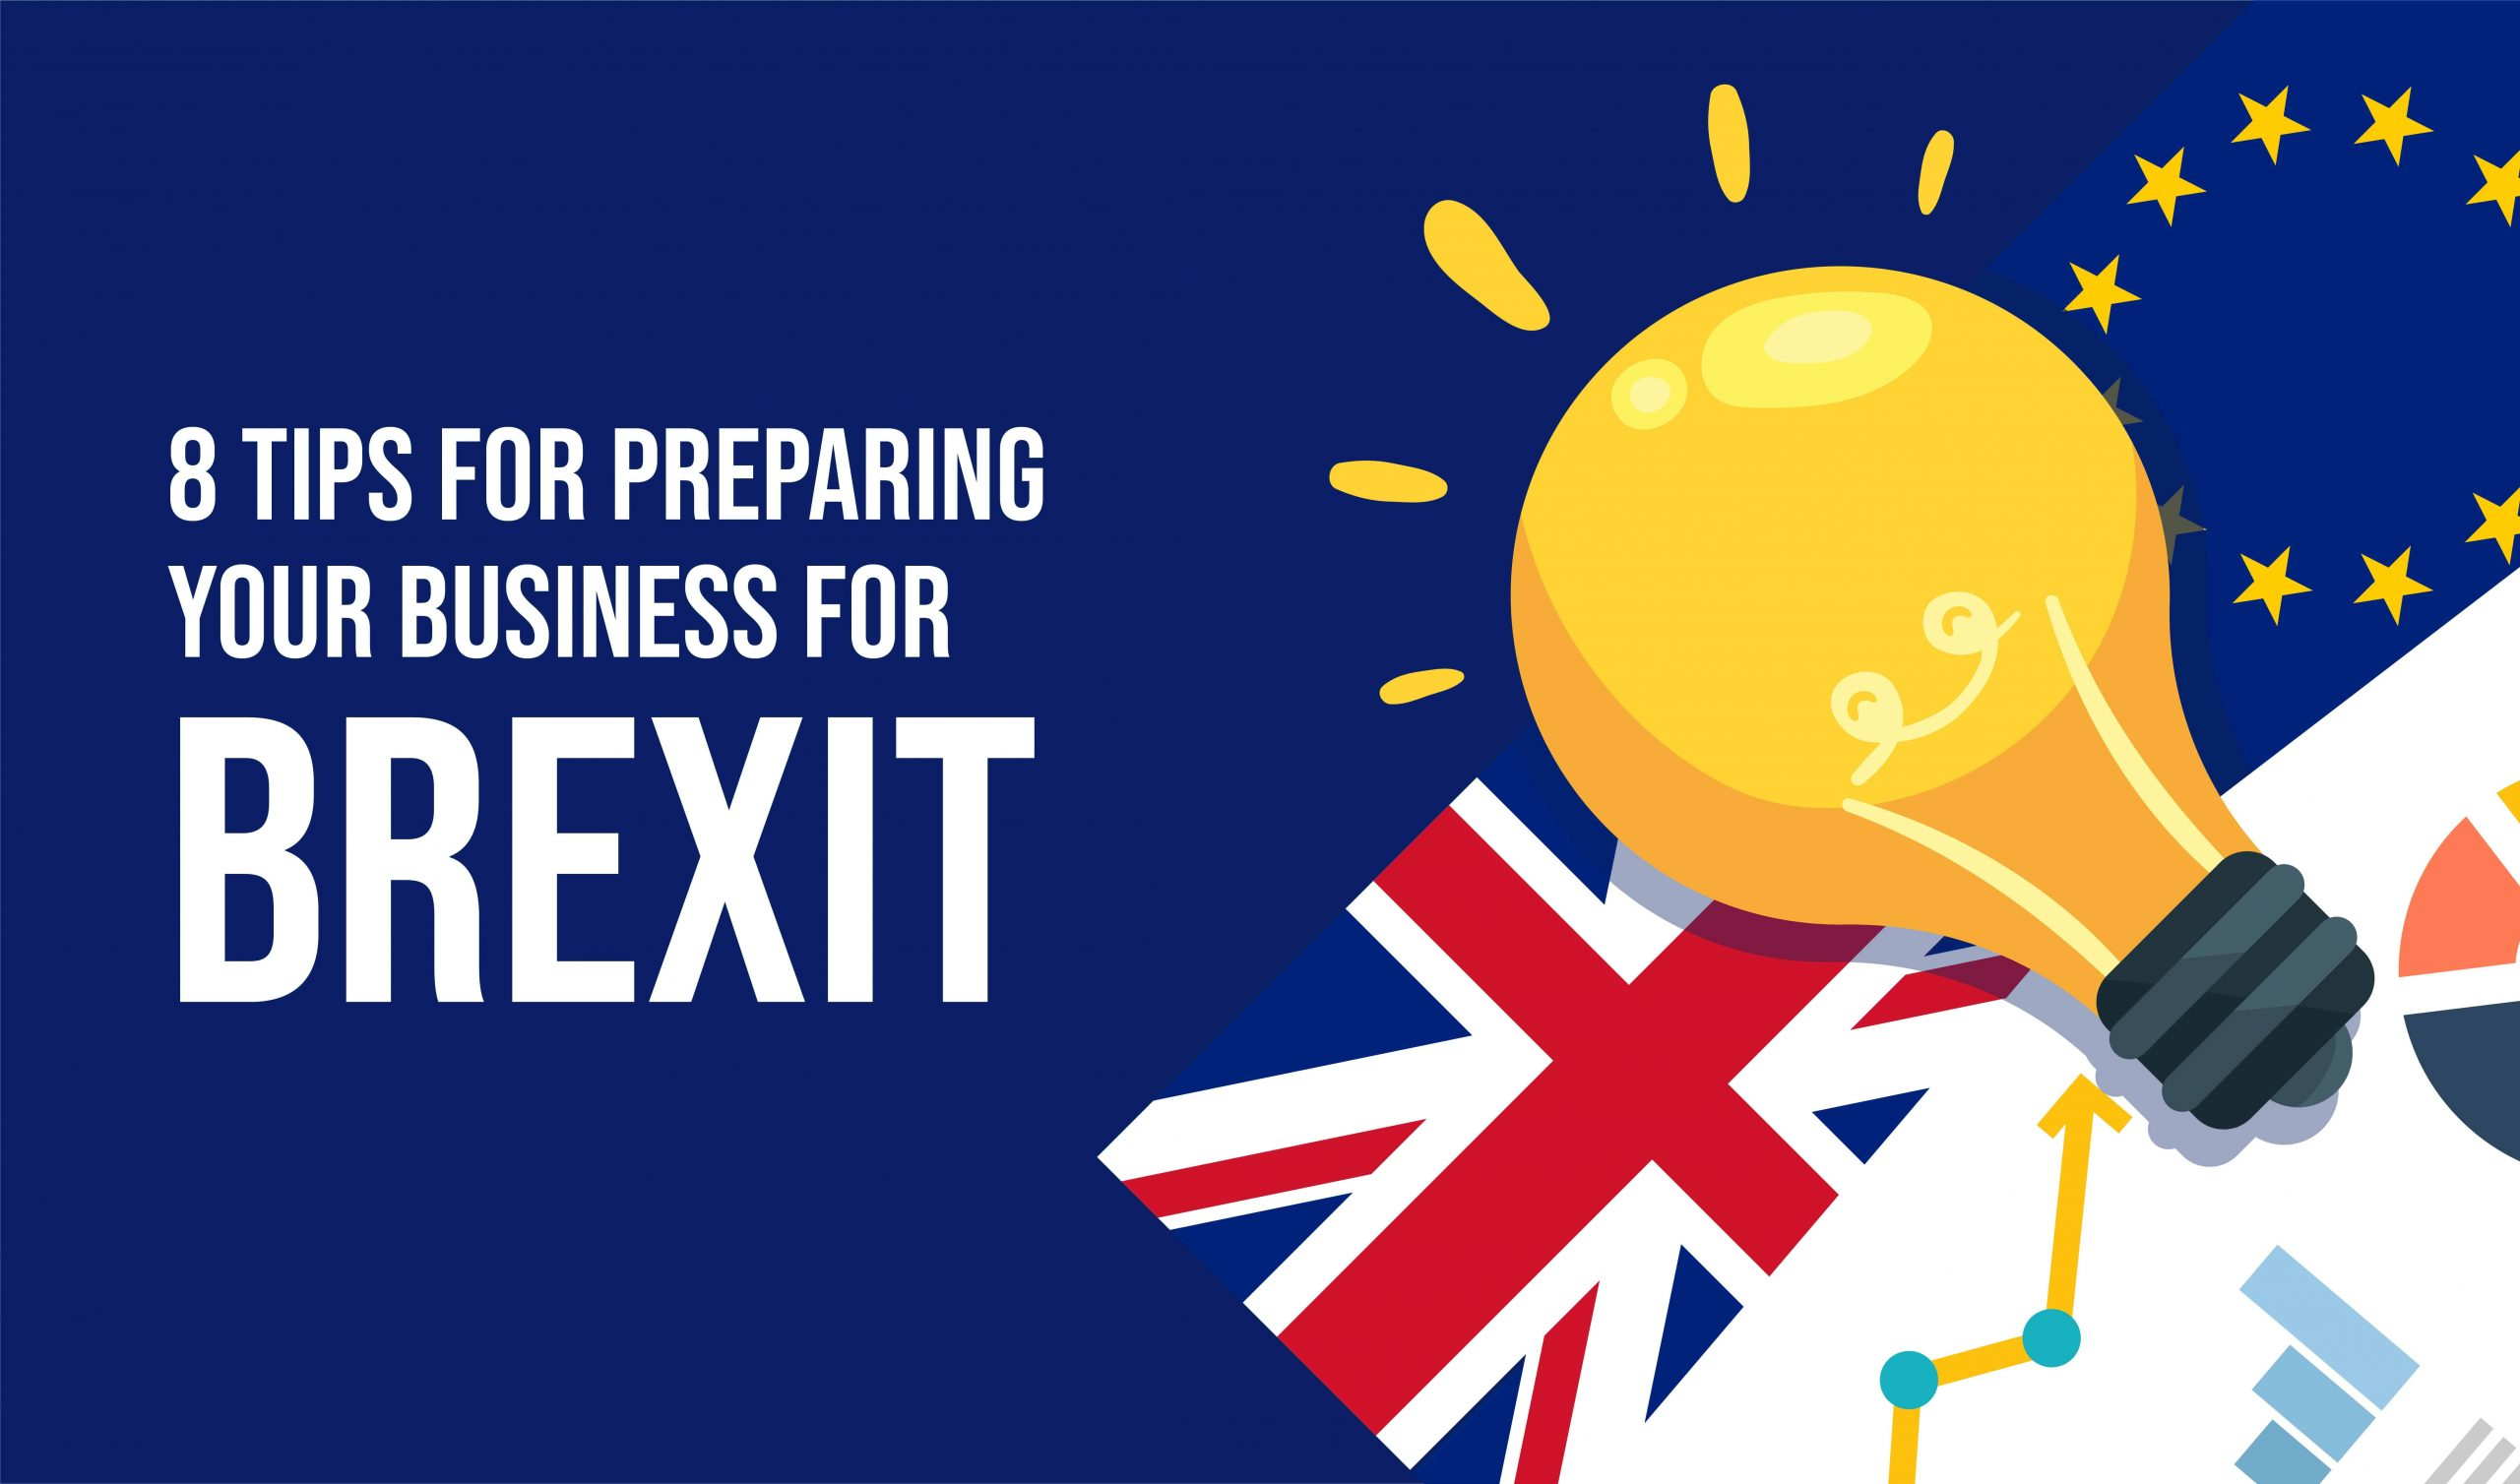 8 Tips for Preparing your Business for Brexit